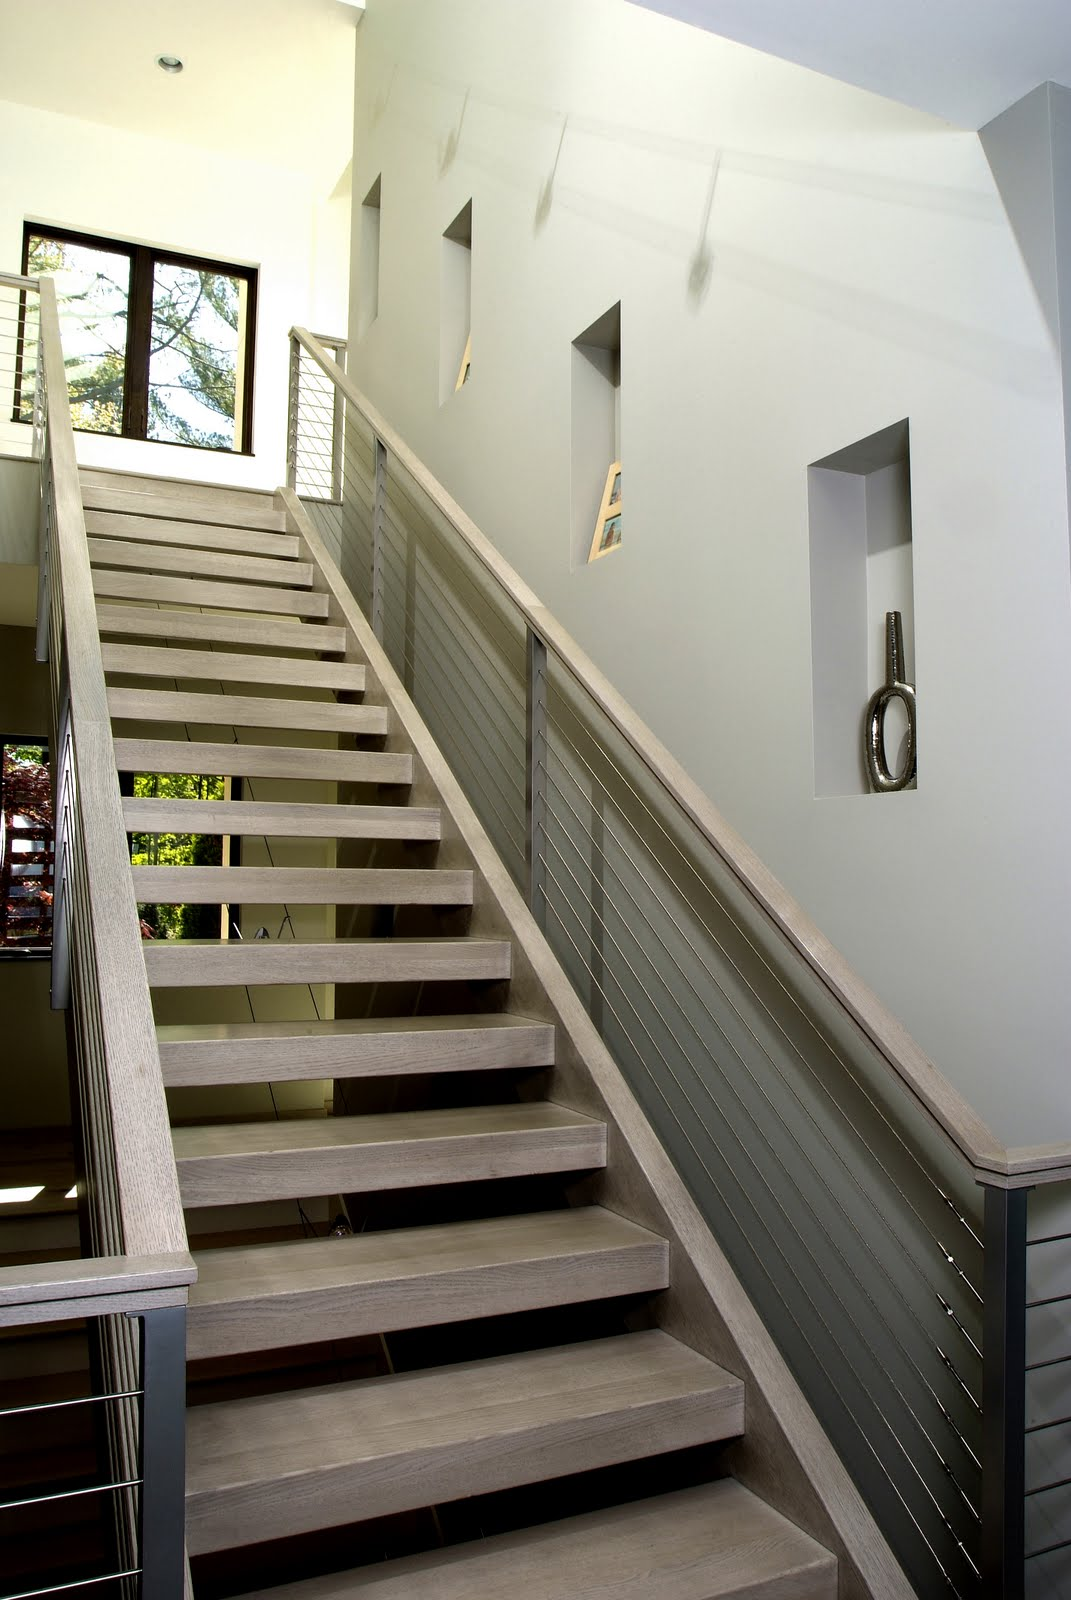 Stairs Designer Architectural Tutorial Stairs Visbeen Architects